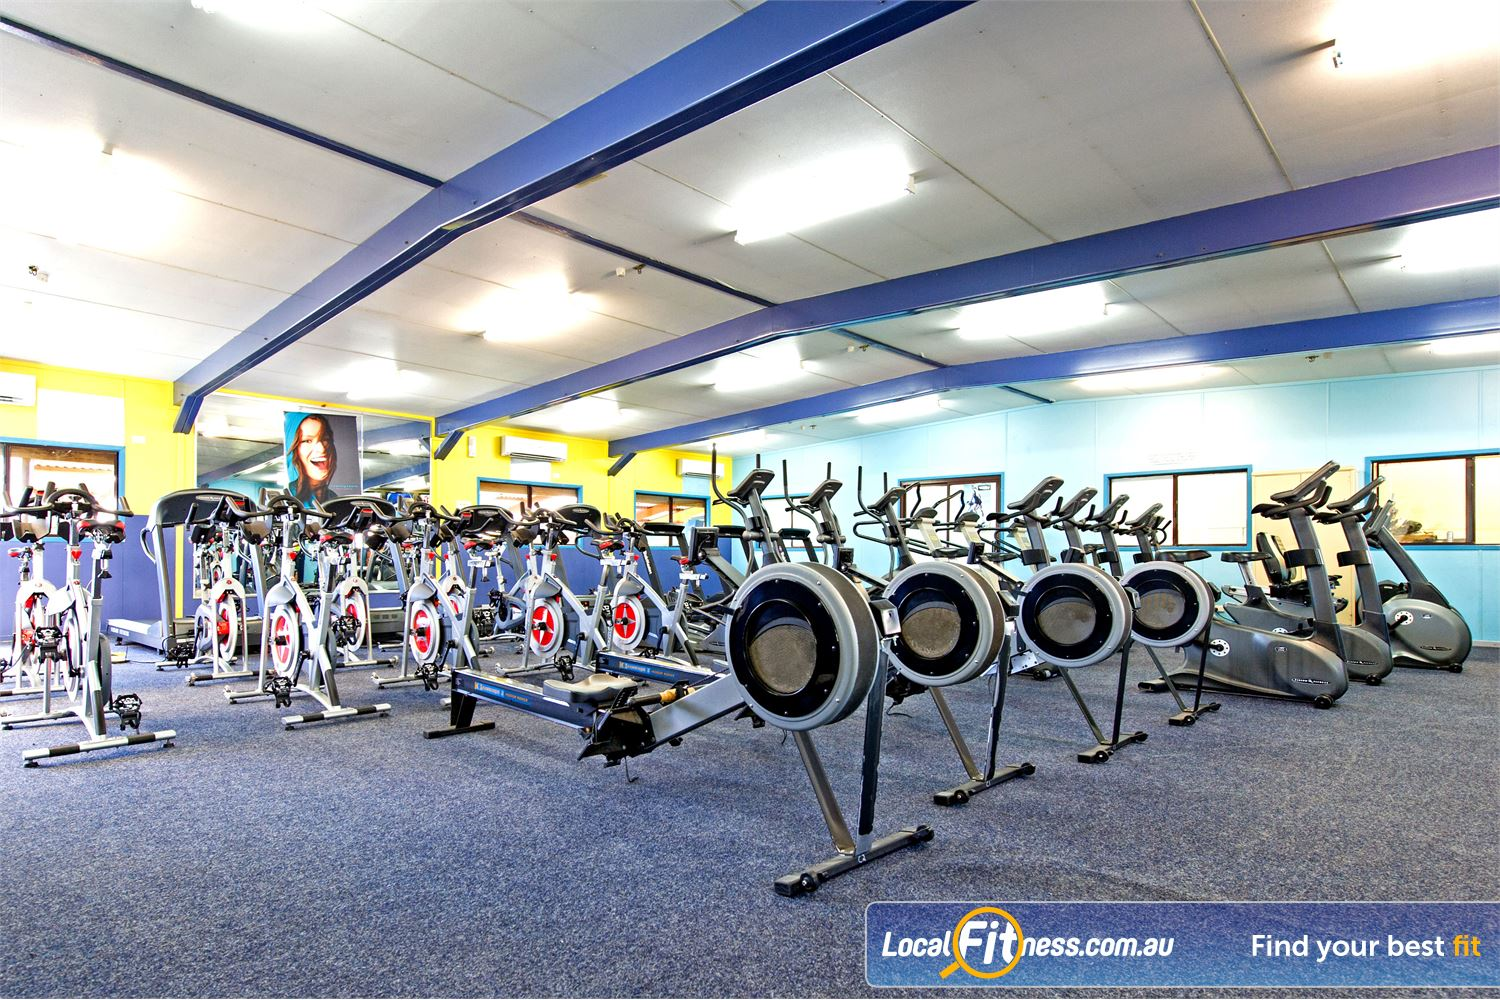 Waves Fitness and Aquatic Centre Baulkham Hills Comprehensive range of cardio equipment includes treadmills, rowers, and more.